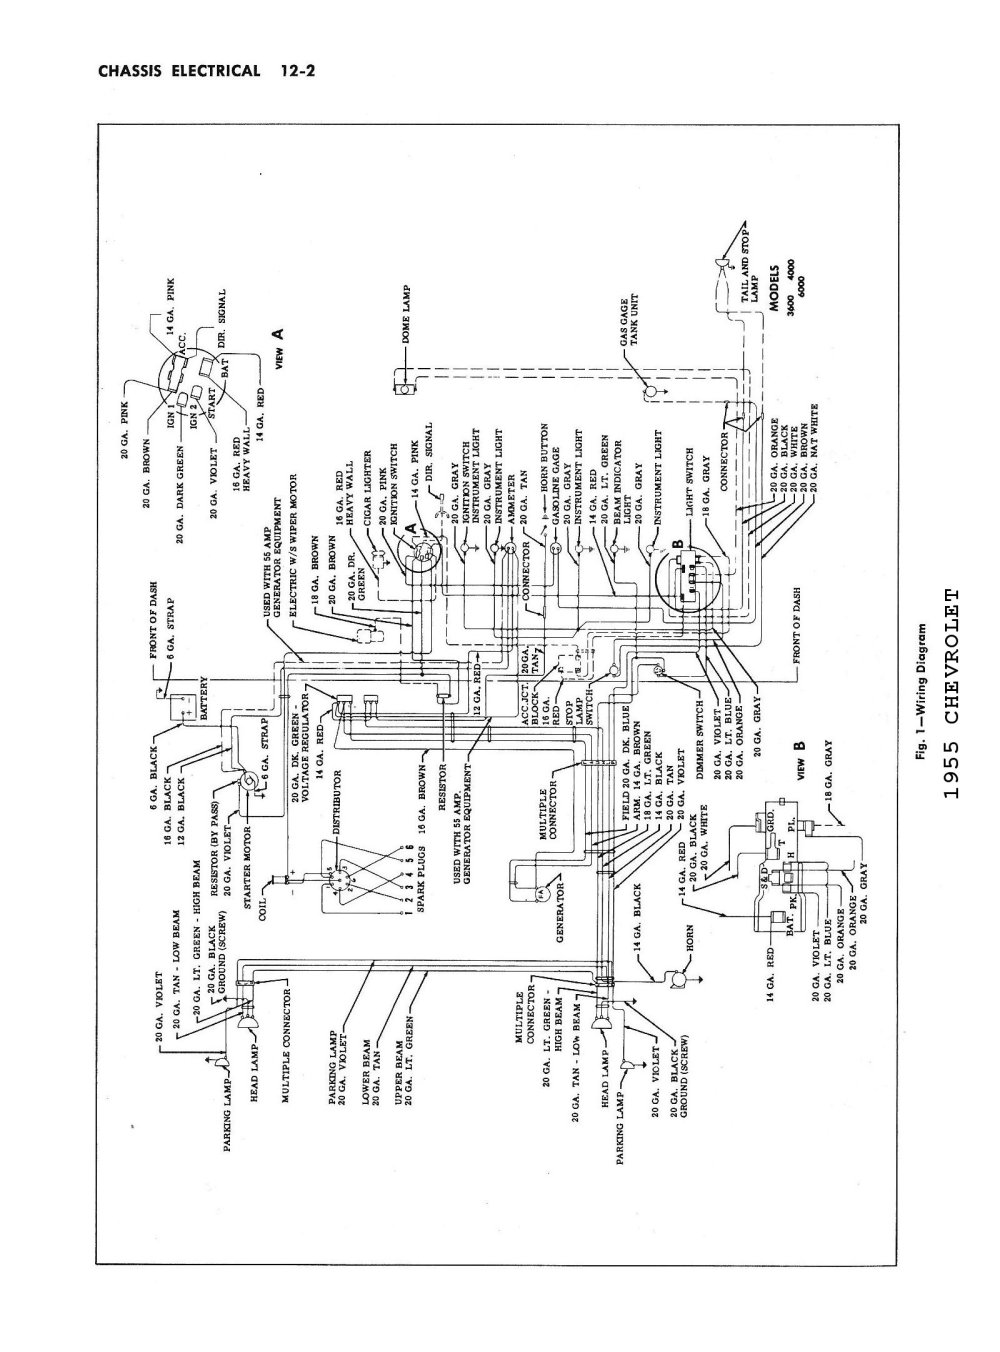 medium resolution of 1957 chevrolet wiring diagram wiring diagram 1956 international pickup